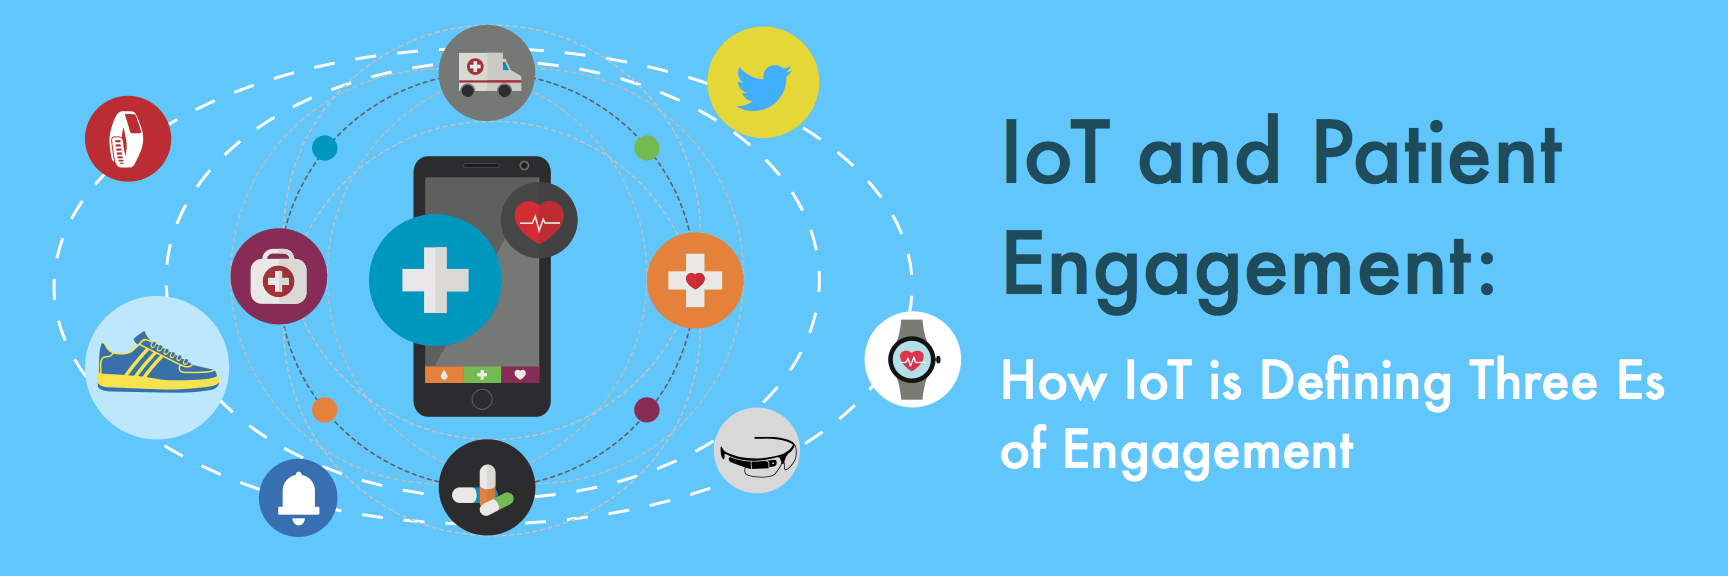 Internet of things and patient engagement